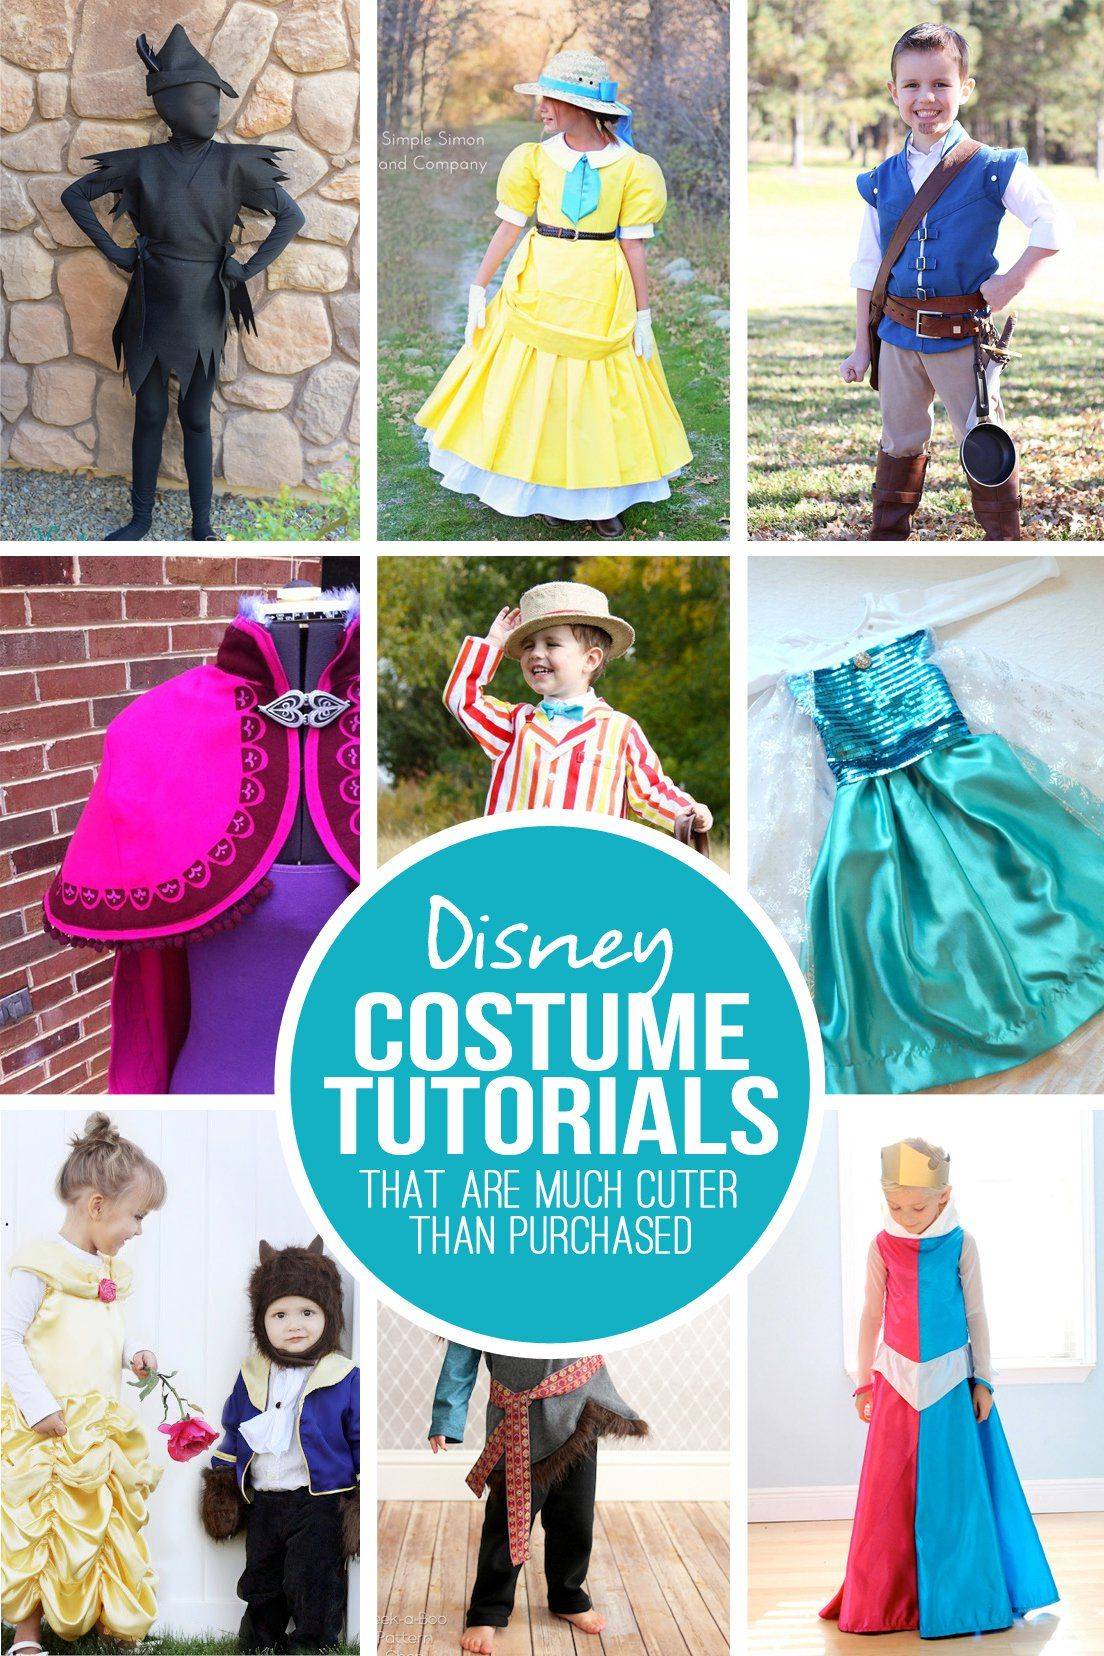 28 Diy Disney Costume Tutorials That Are Much Cuter Than Purchased Make Your Own Costumes And Love Them